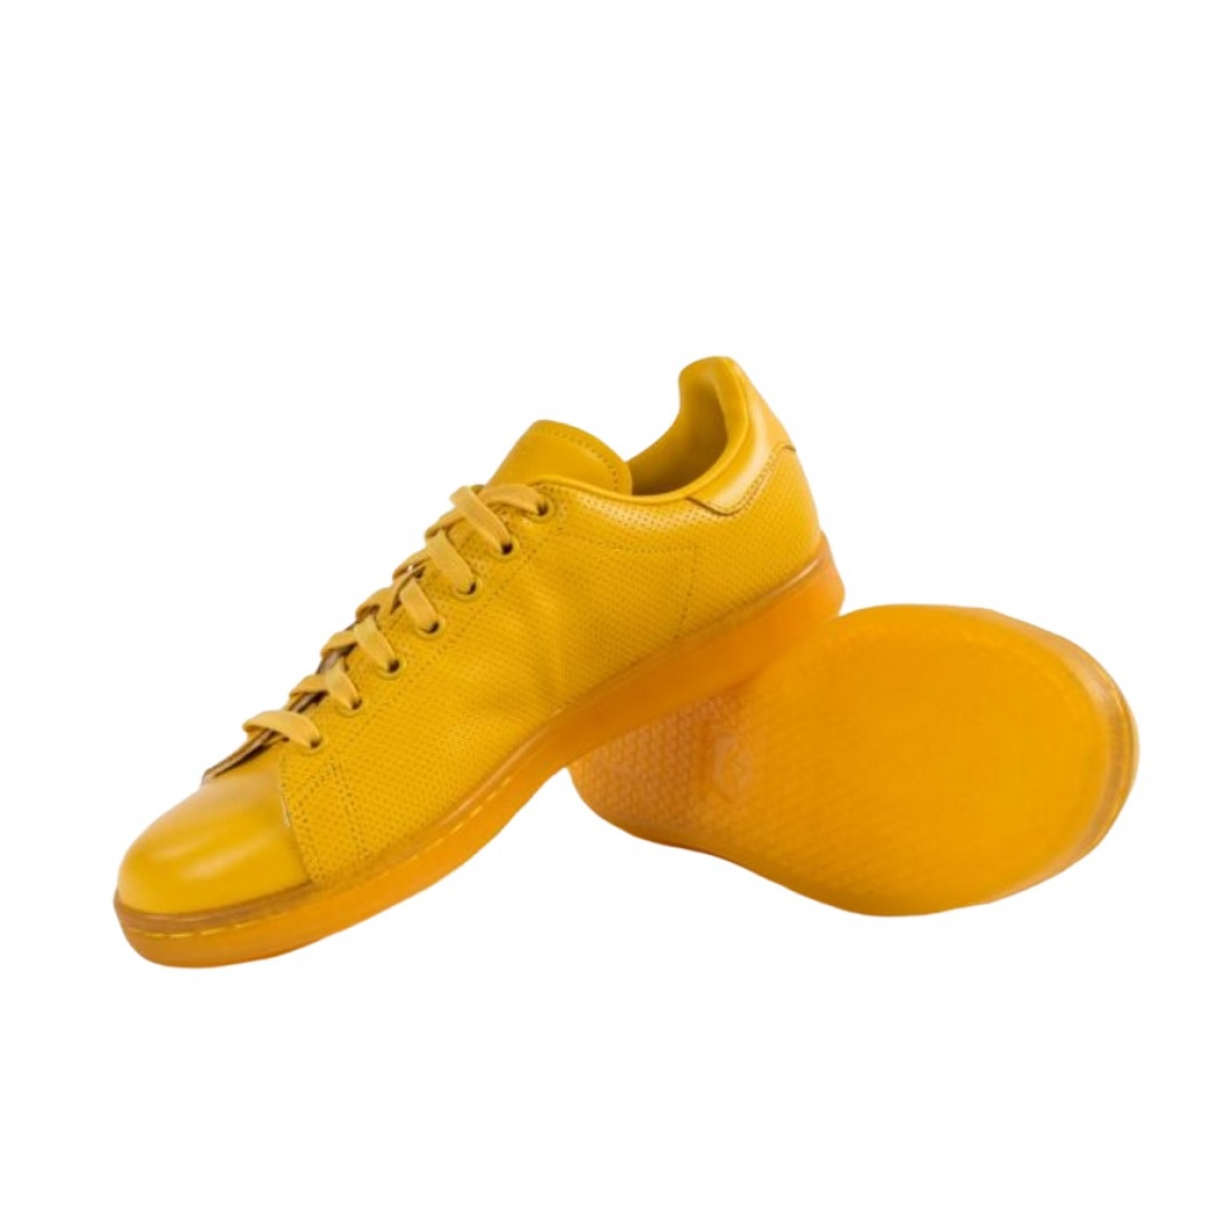 Adidas Stan Smith Yellow Leather Trainers for Men 39.5 EU